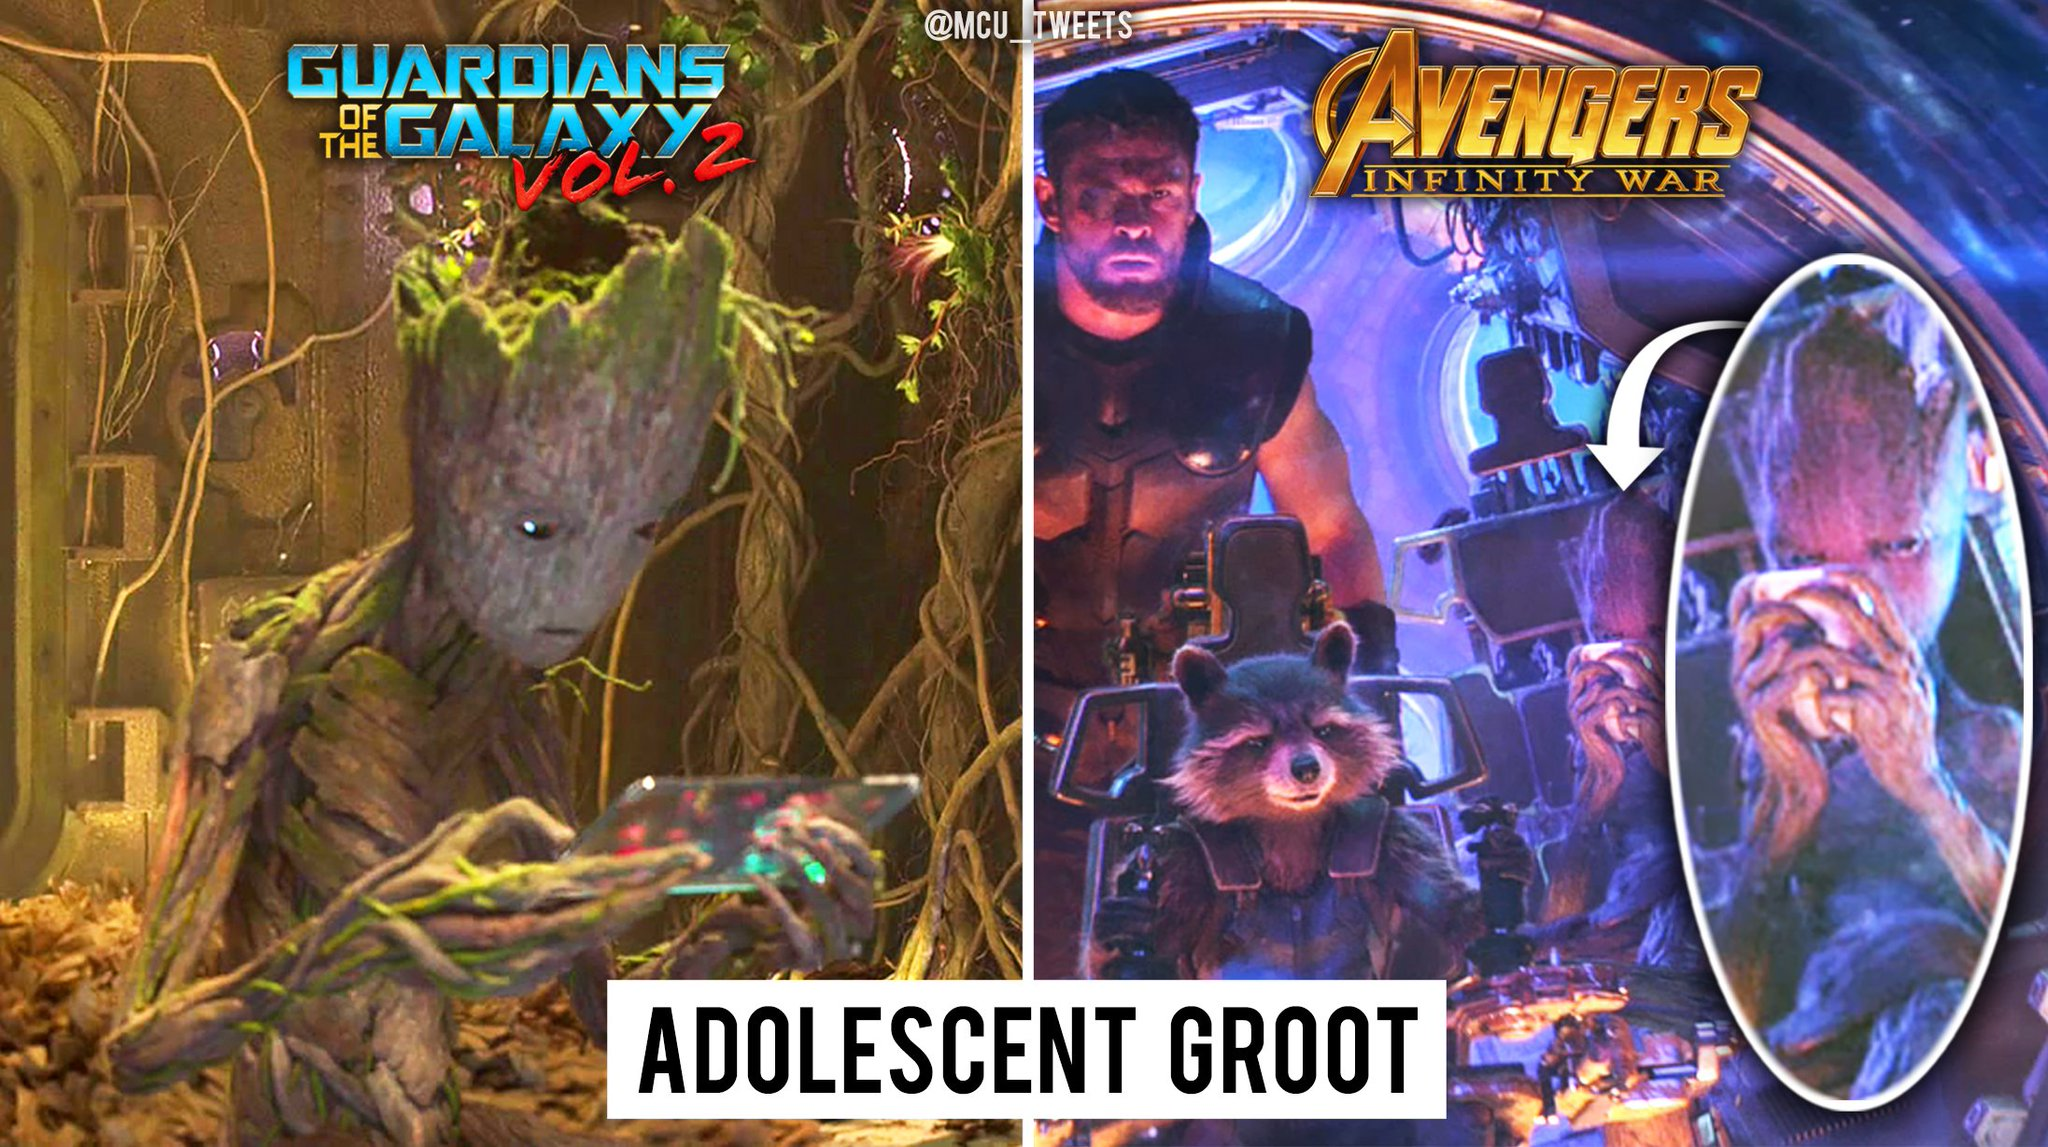 Groot may have a bit of an addiction... https://t.co/ZnOHJJ8GLe